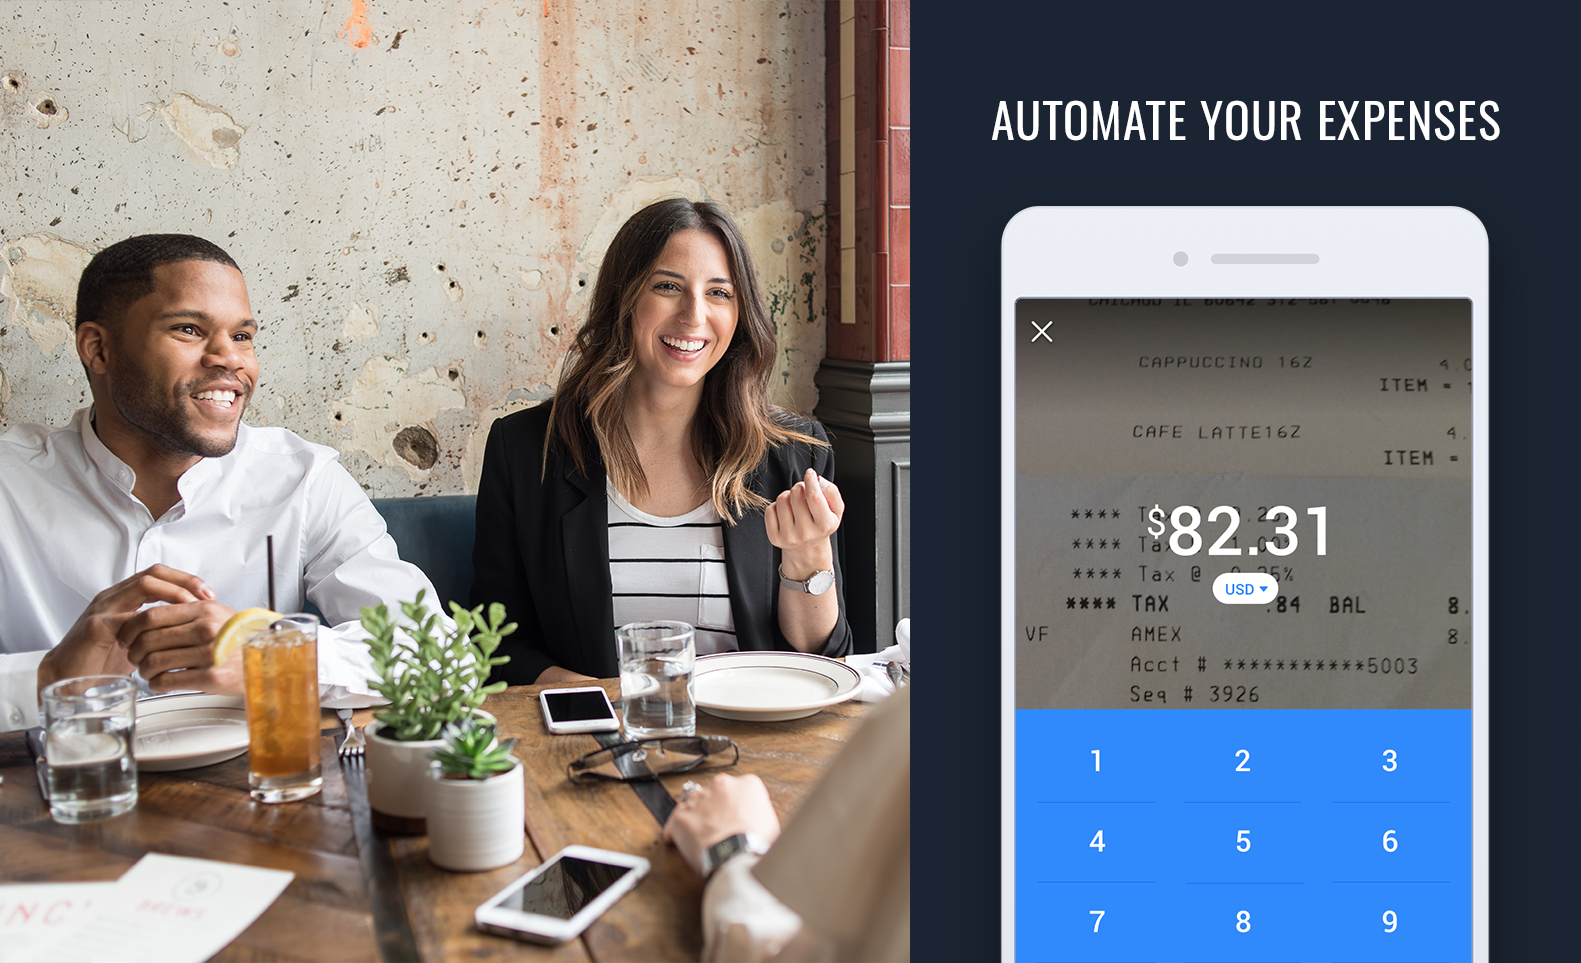 Automate expenses